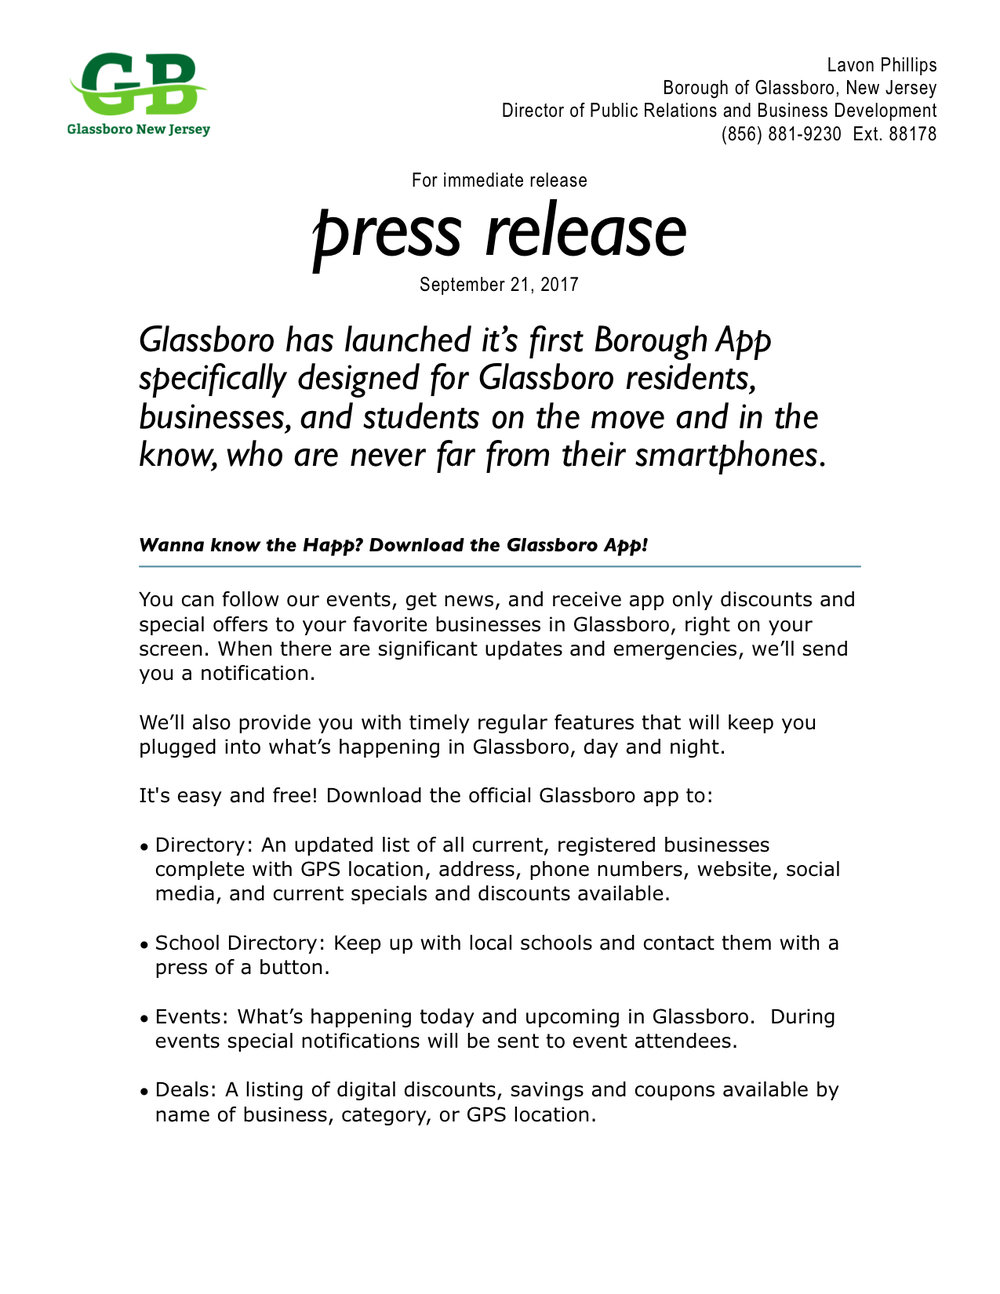 PRESS RELEASE: Glassboro announces it first Borough App  copy.jpeg